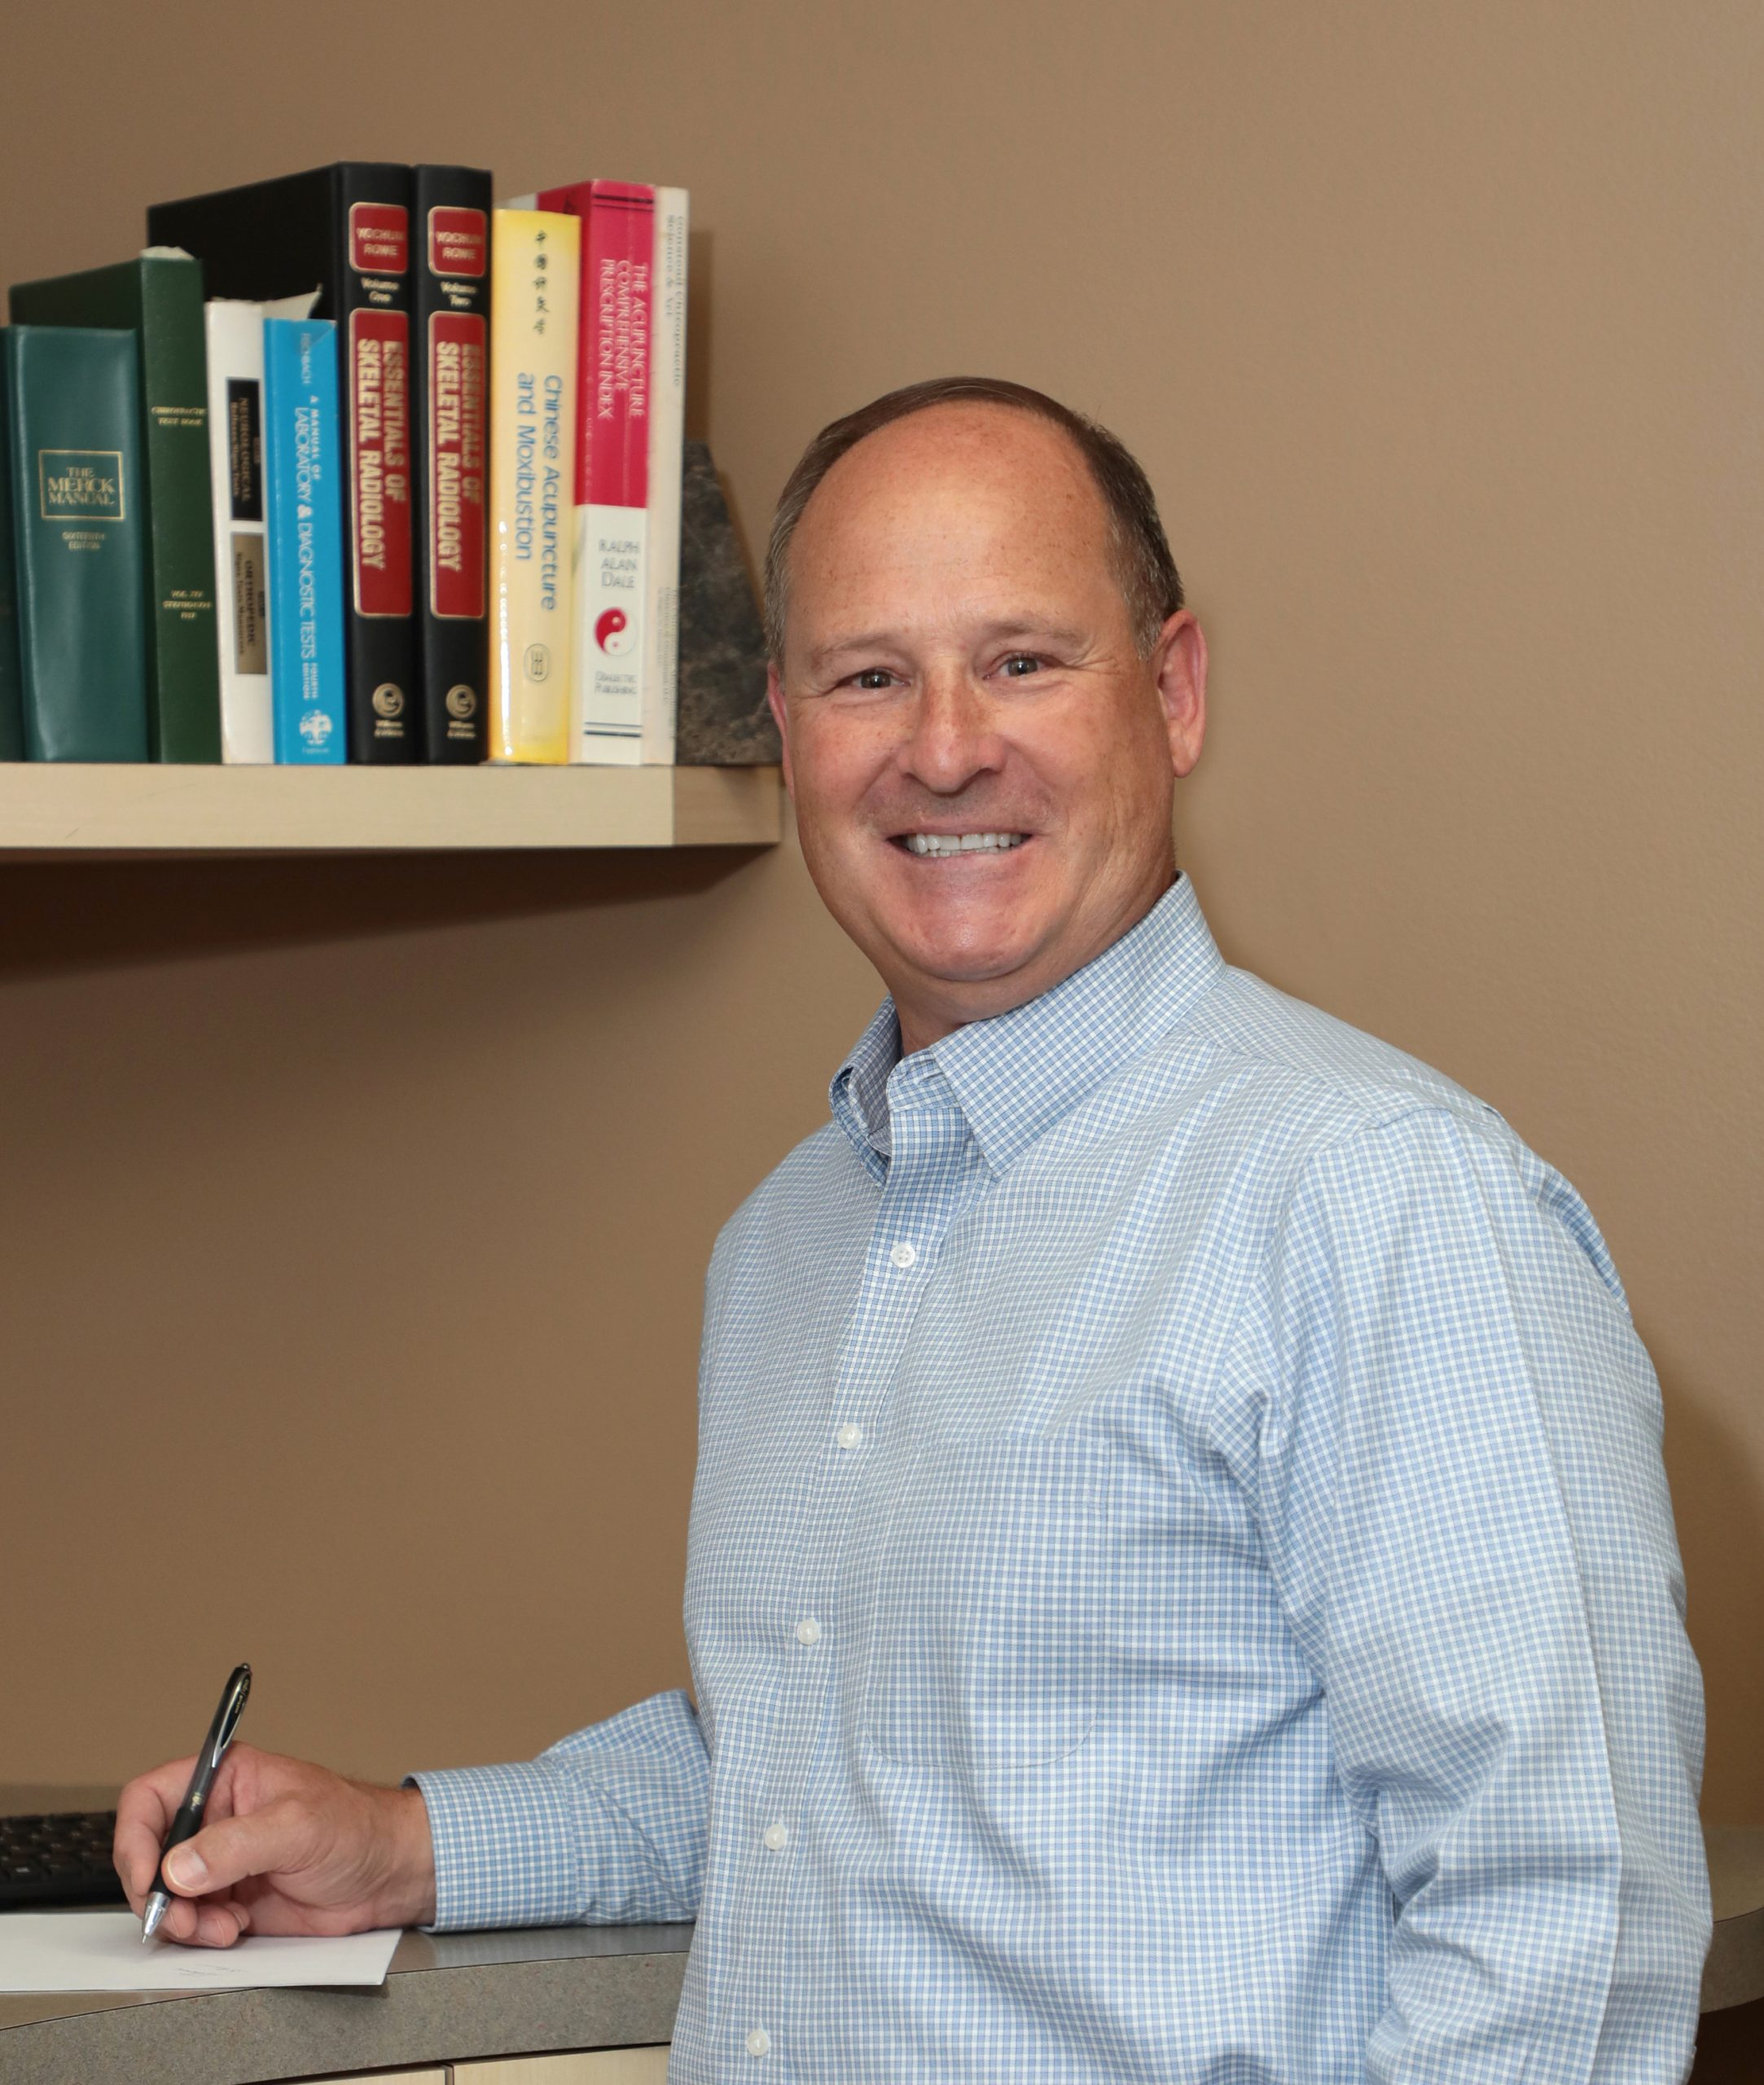 Dr. Rod Langel providing chiropractic care since 1994.